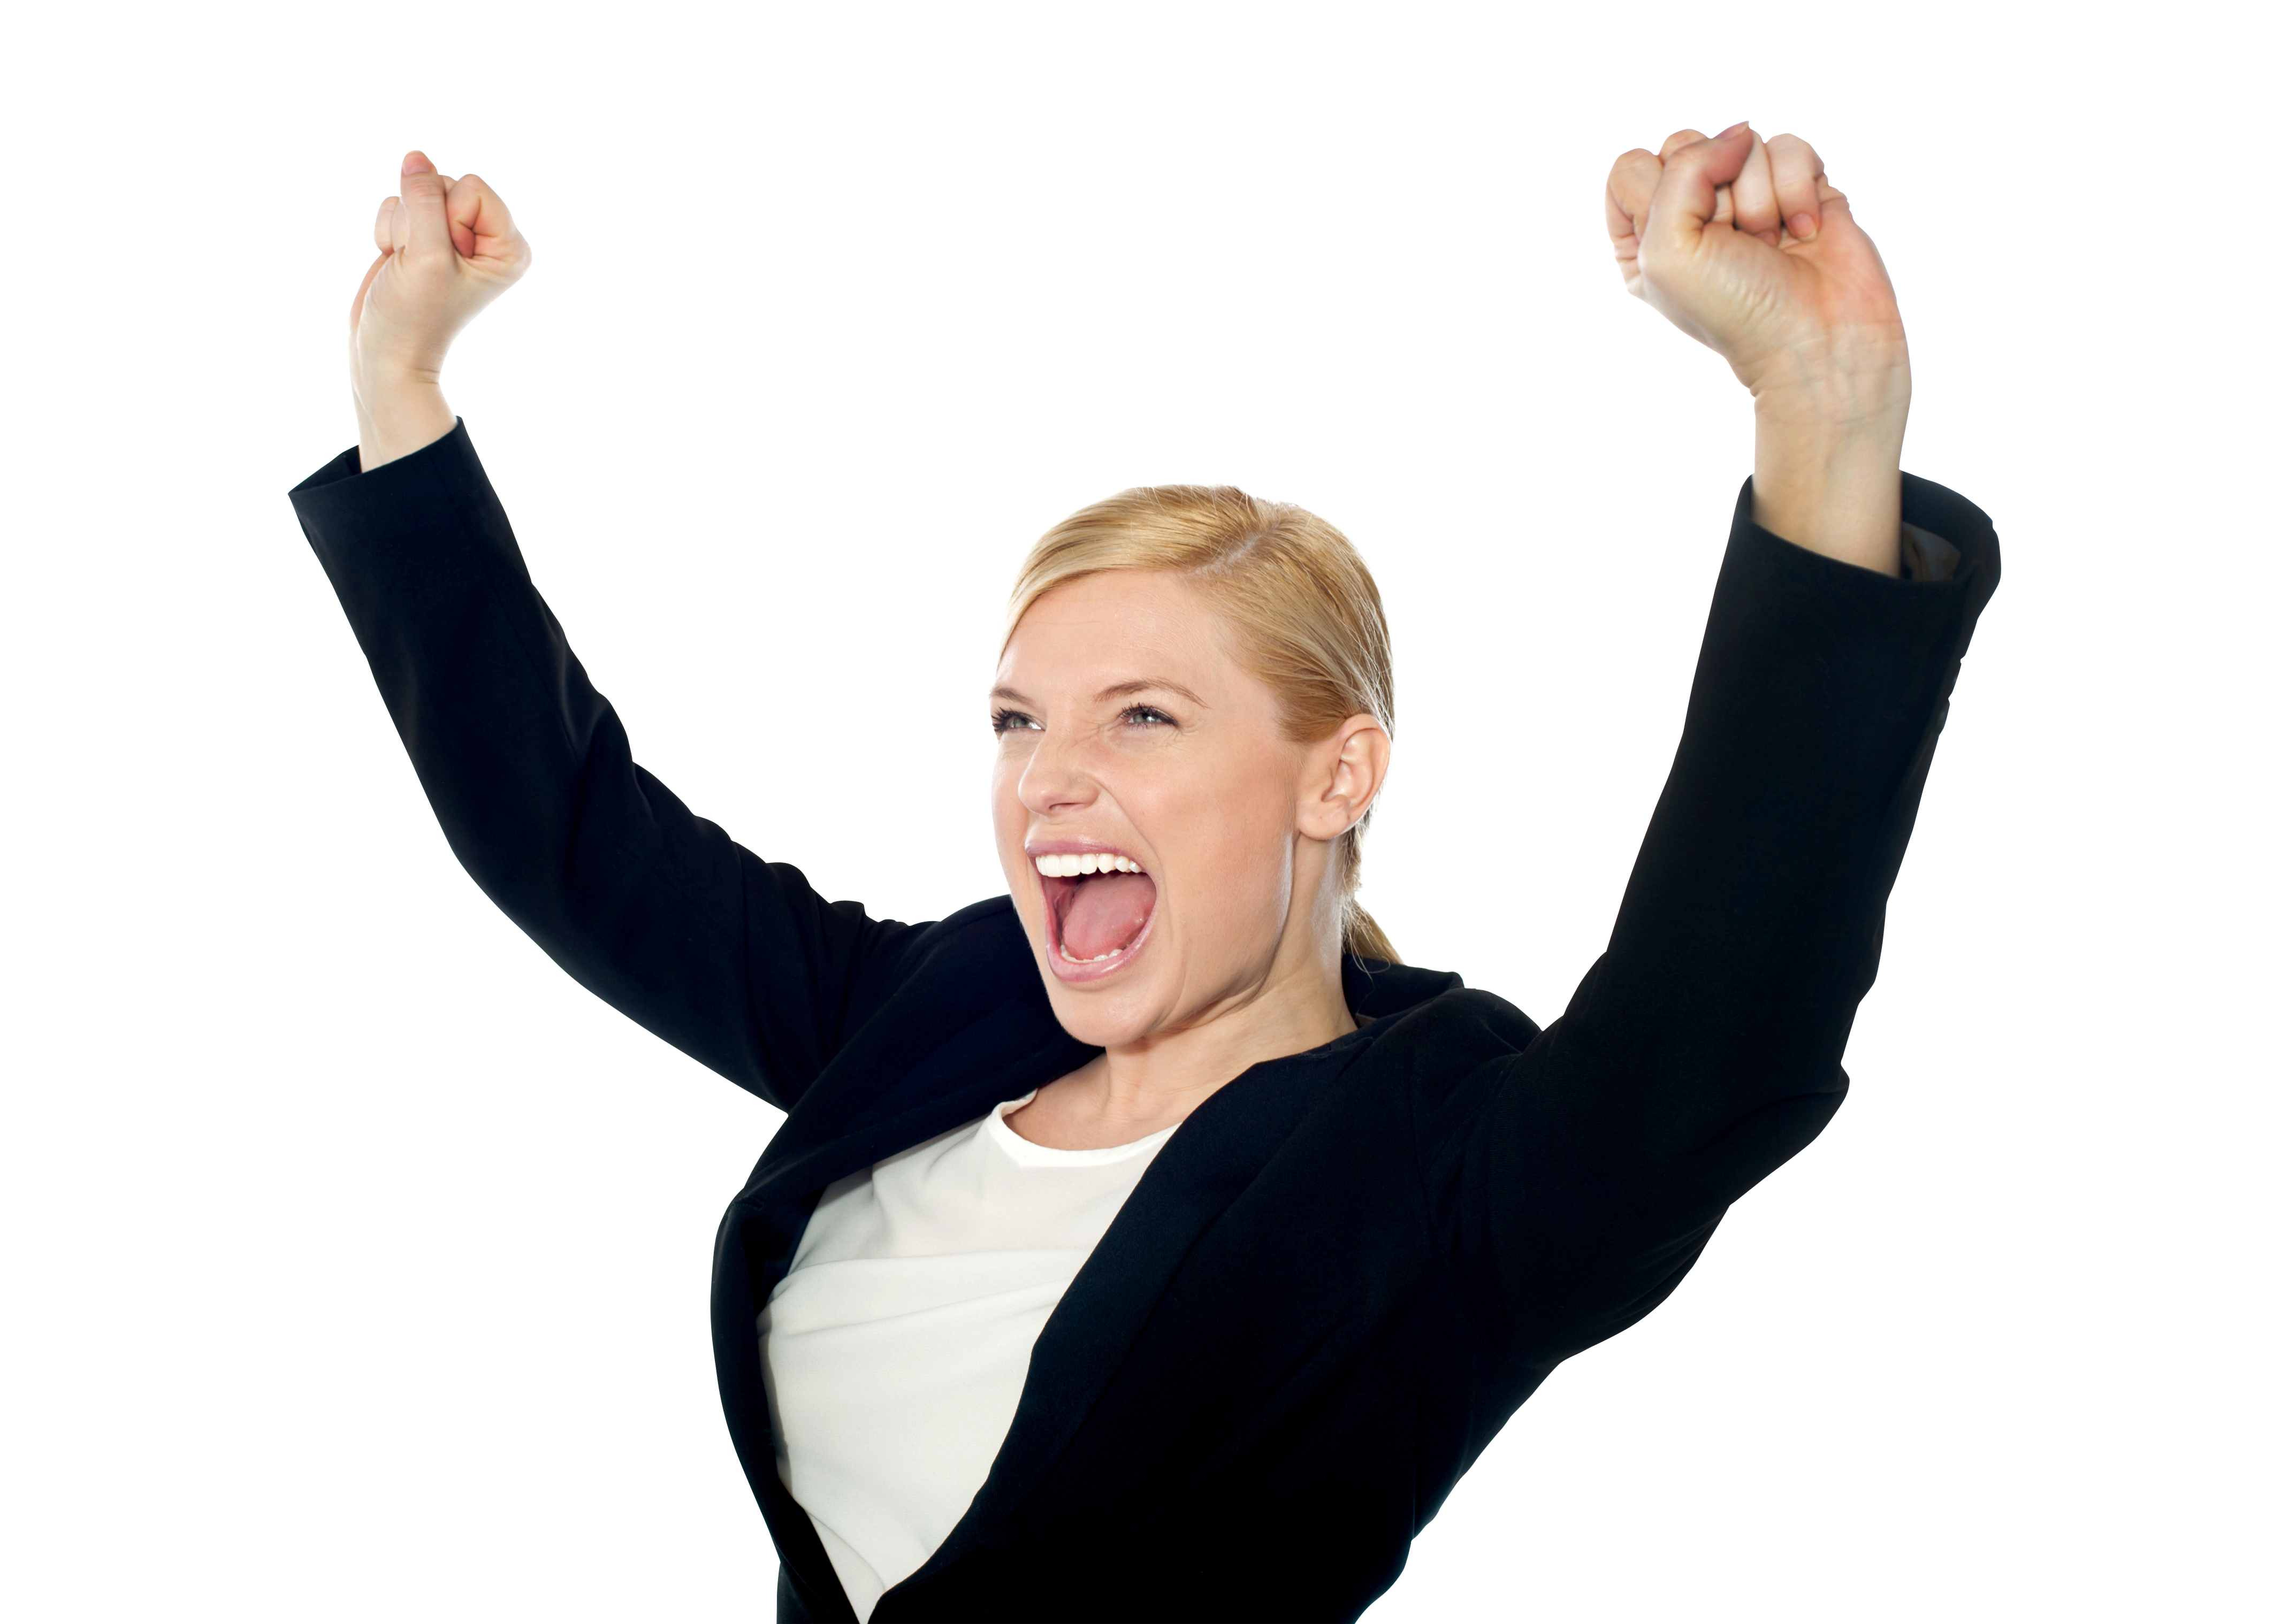 Blonde Happy Woman Black Jacket Person Free PNG 23674